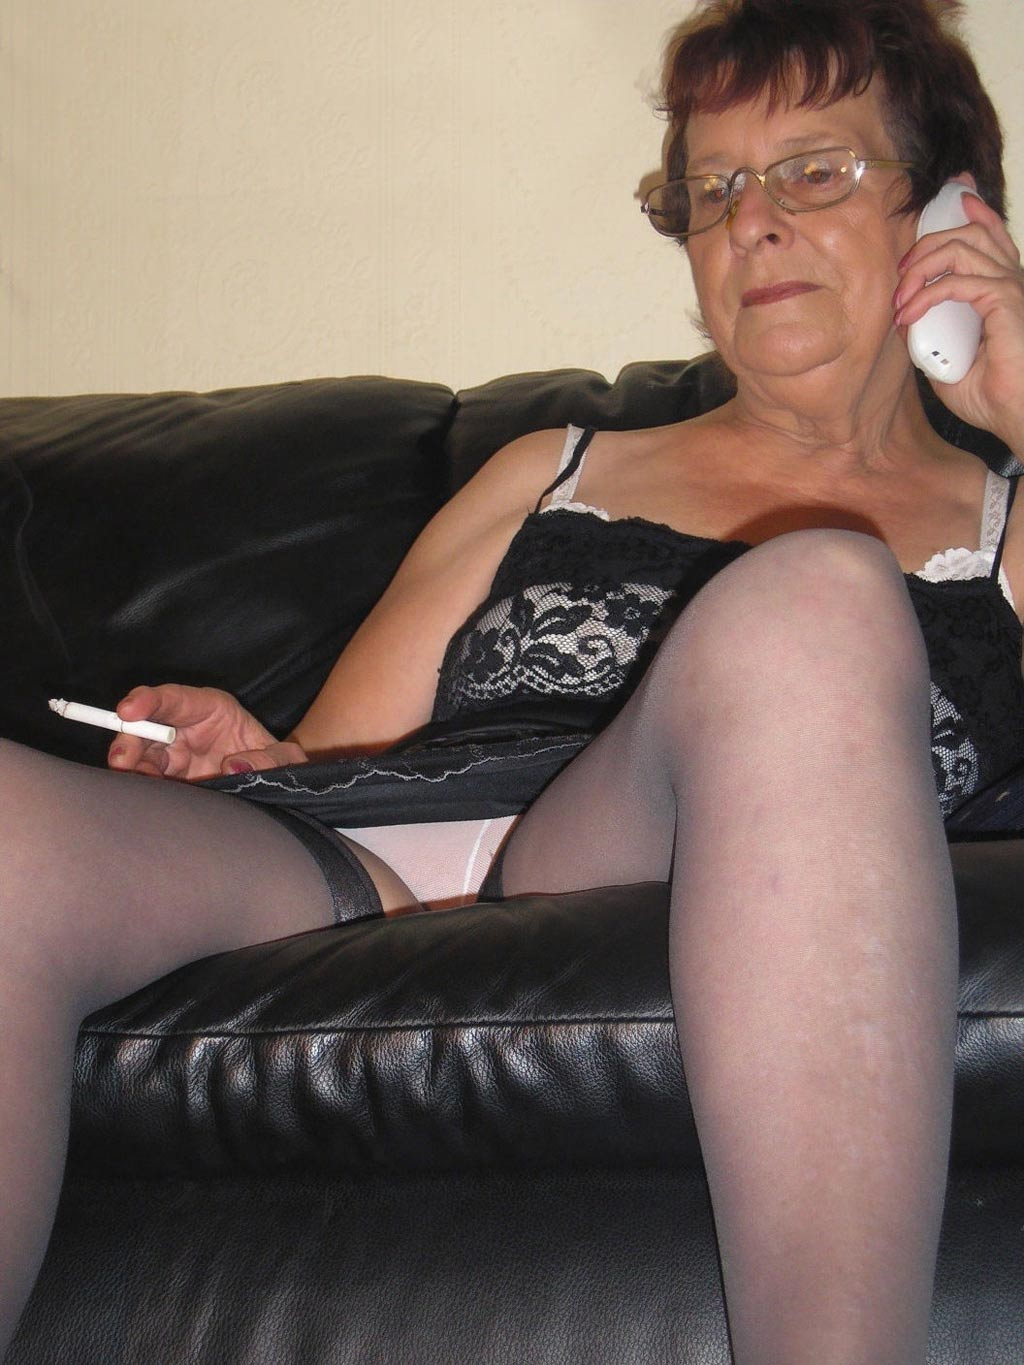 Piss bowl drinking best of Mature Gallery pic grannie